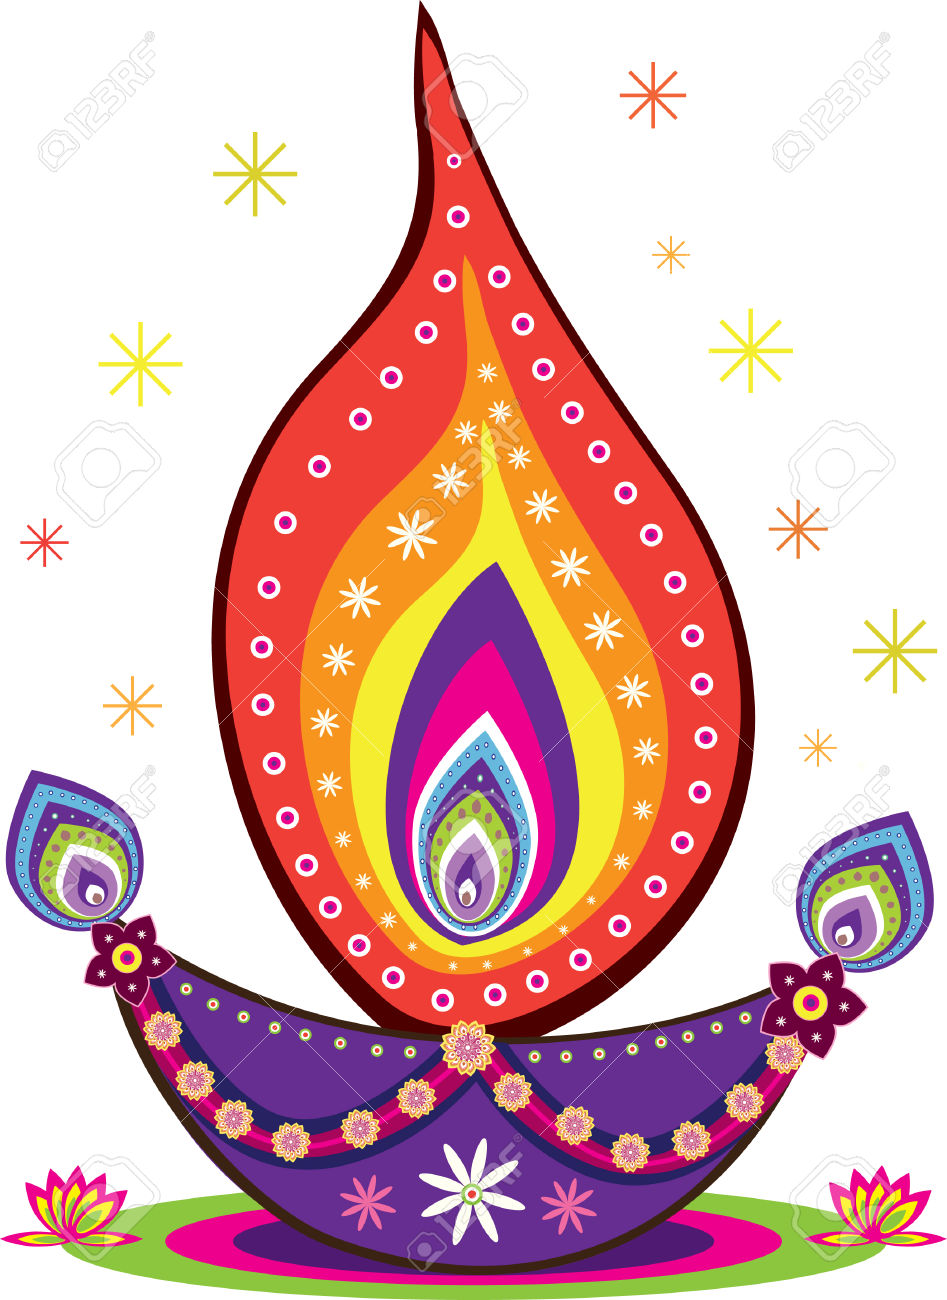 diwali clipart free download clipart panda free clipart images rh clipartpanda com diwali clipart black and white diwali clipart png